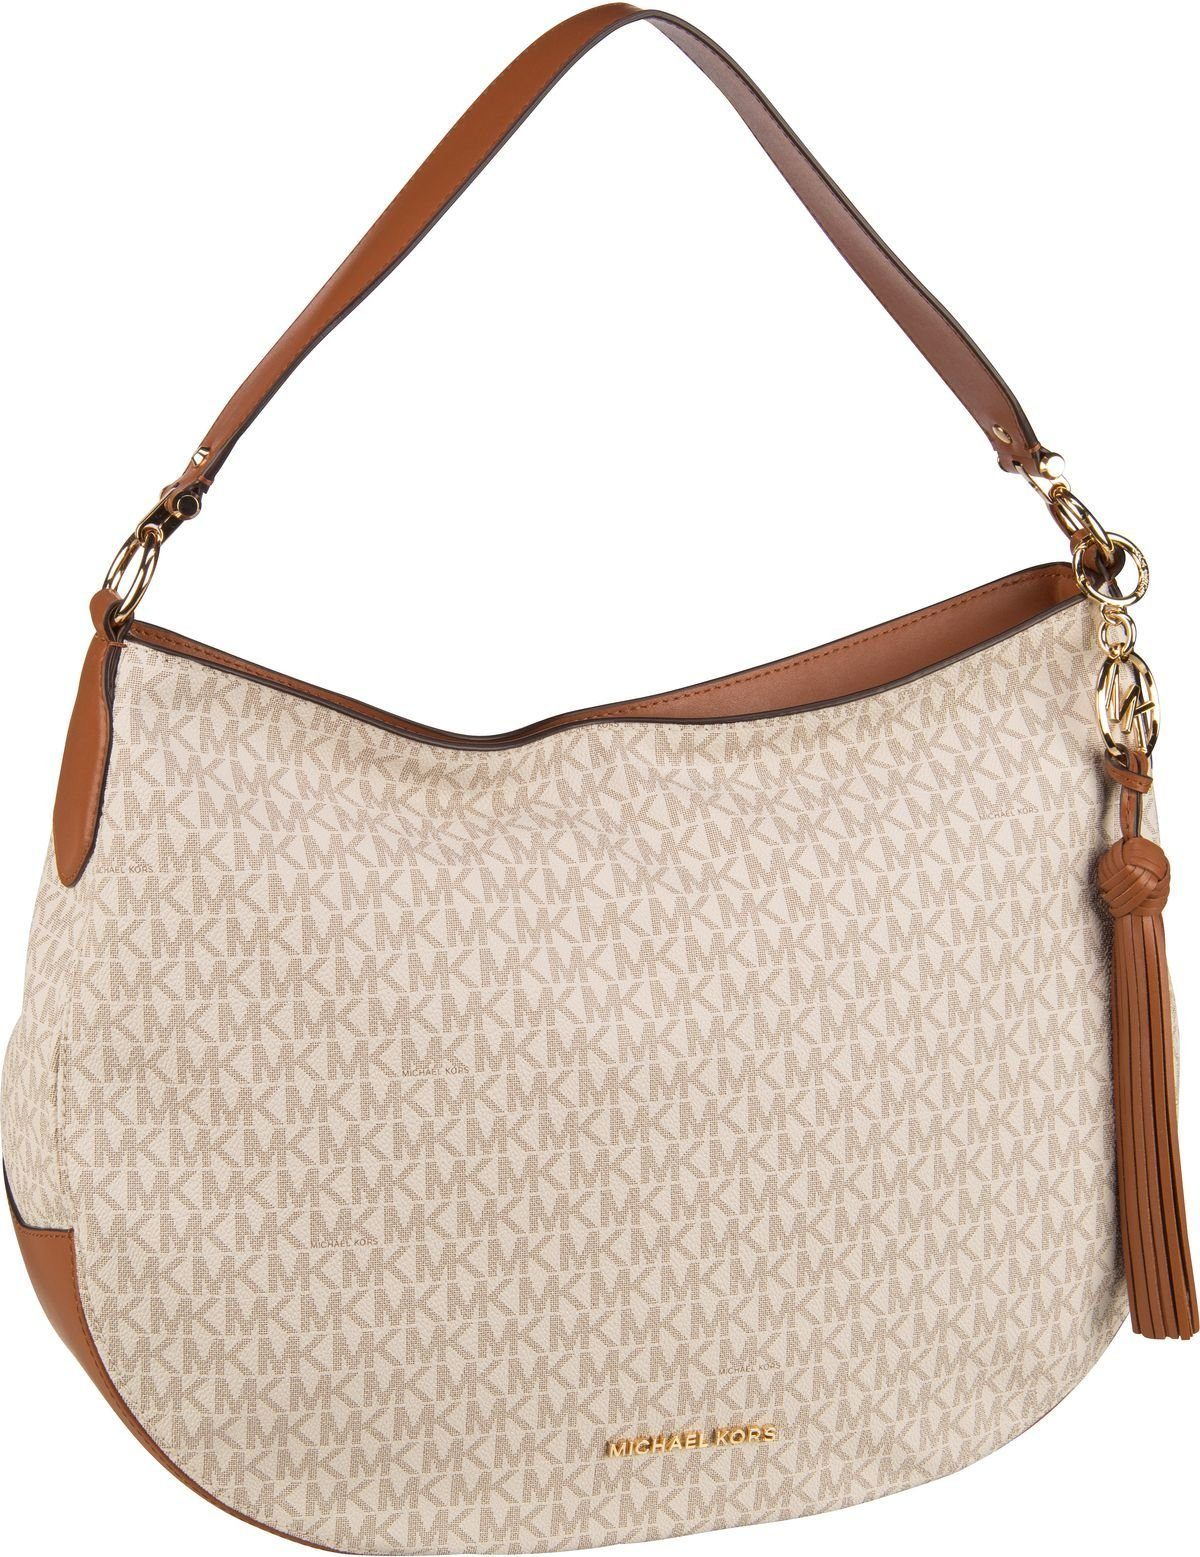 MICHAEL KORS Handtasche »Brooke Large Zip Hobo« | OTTO